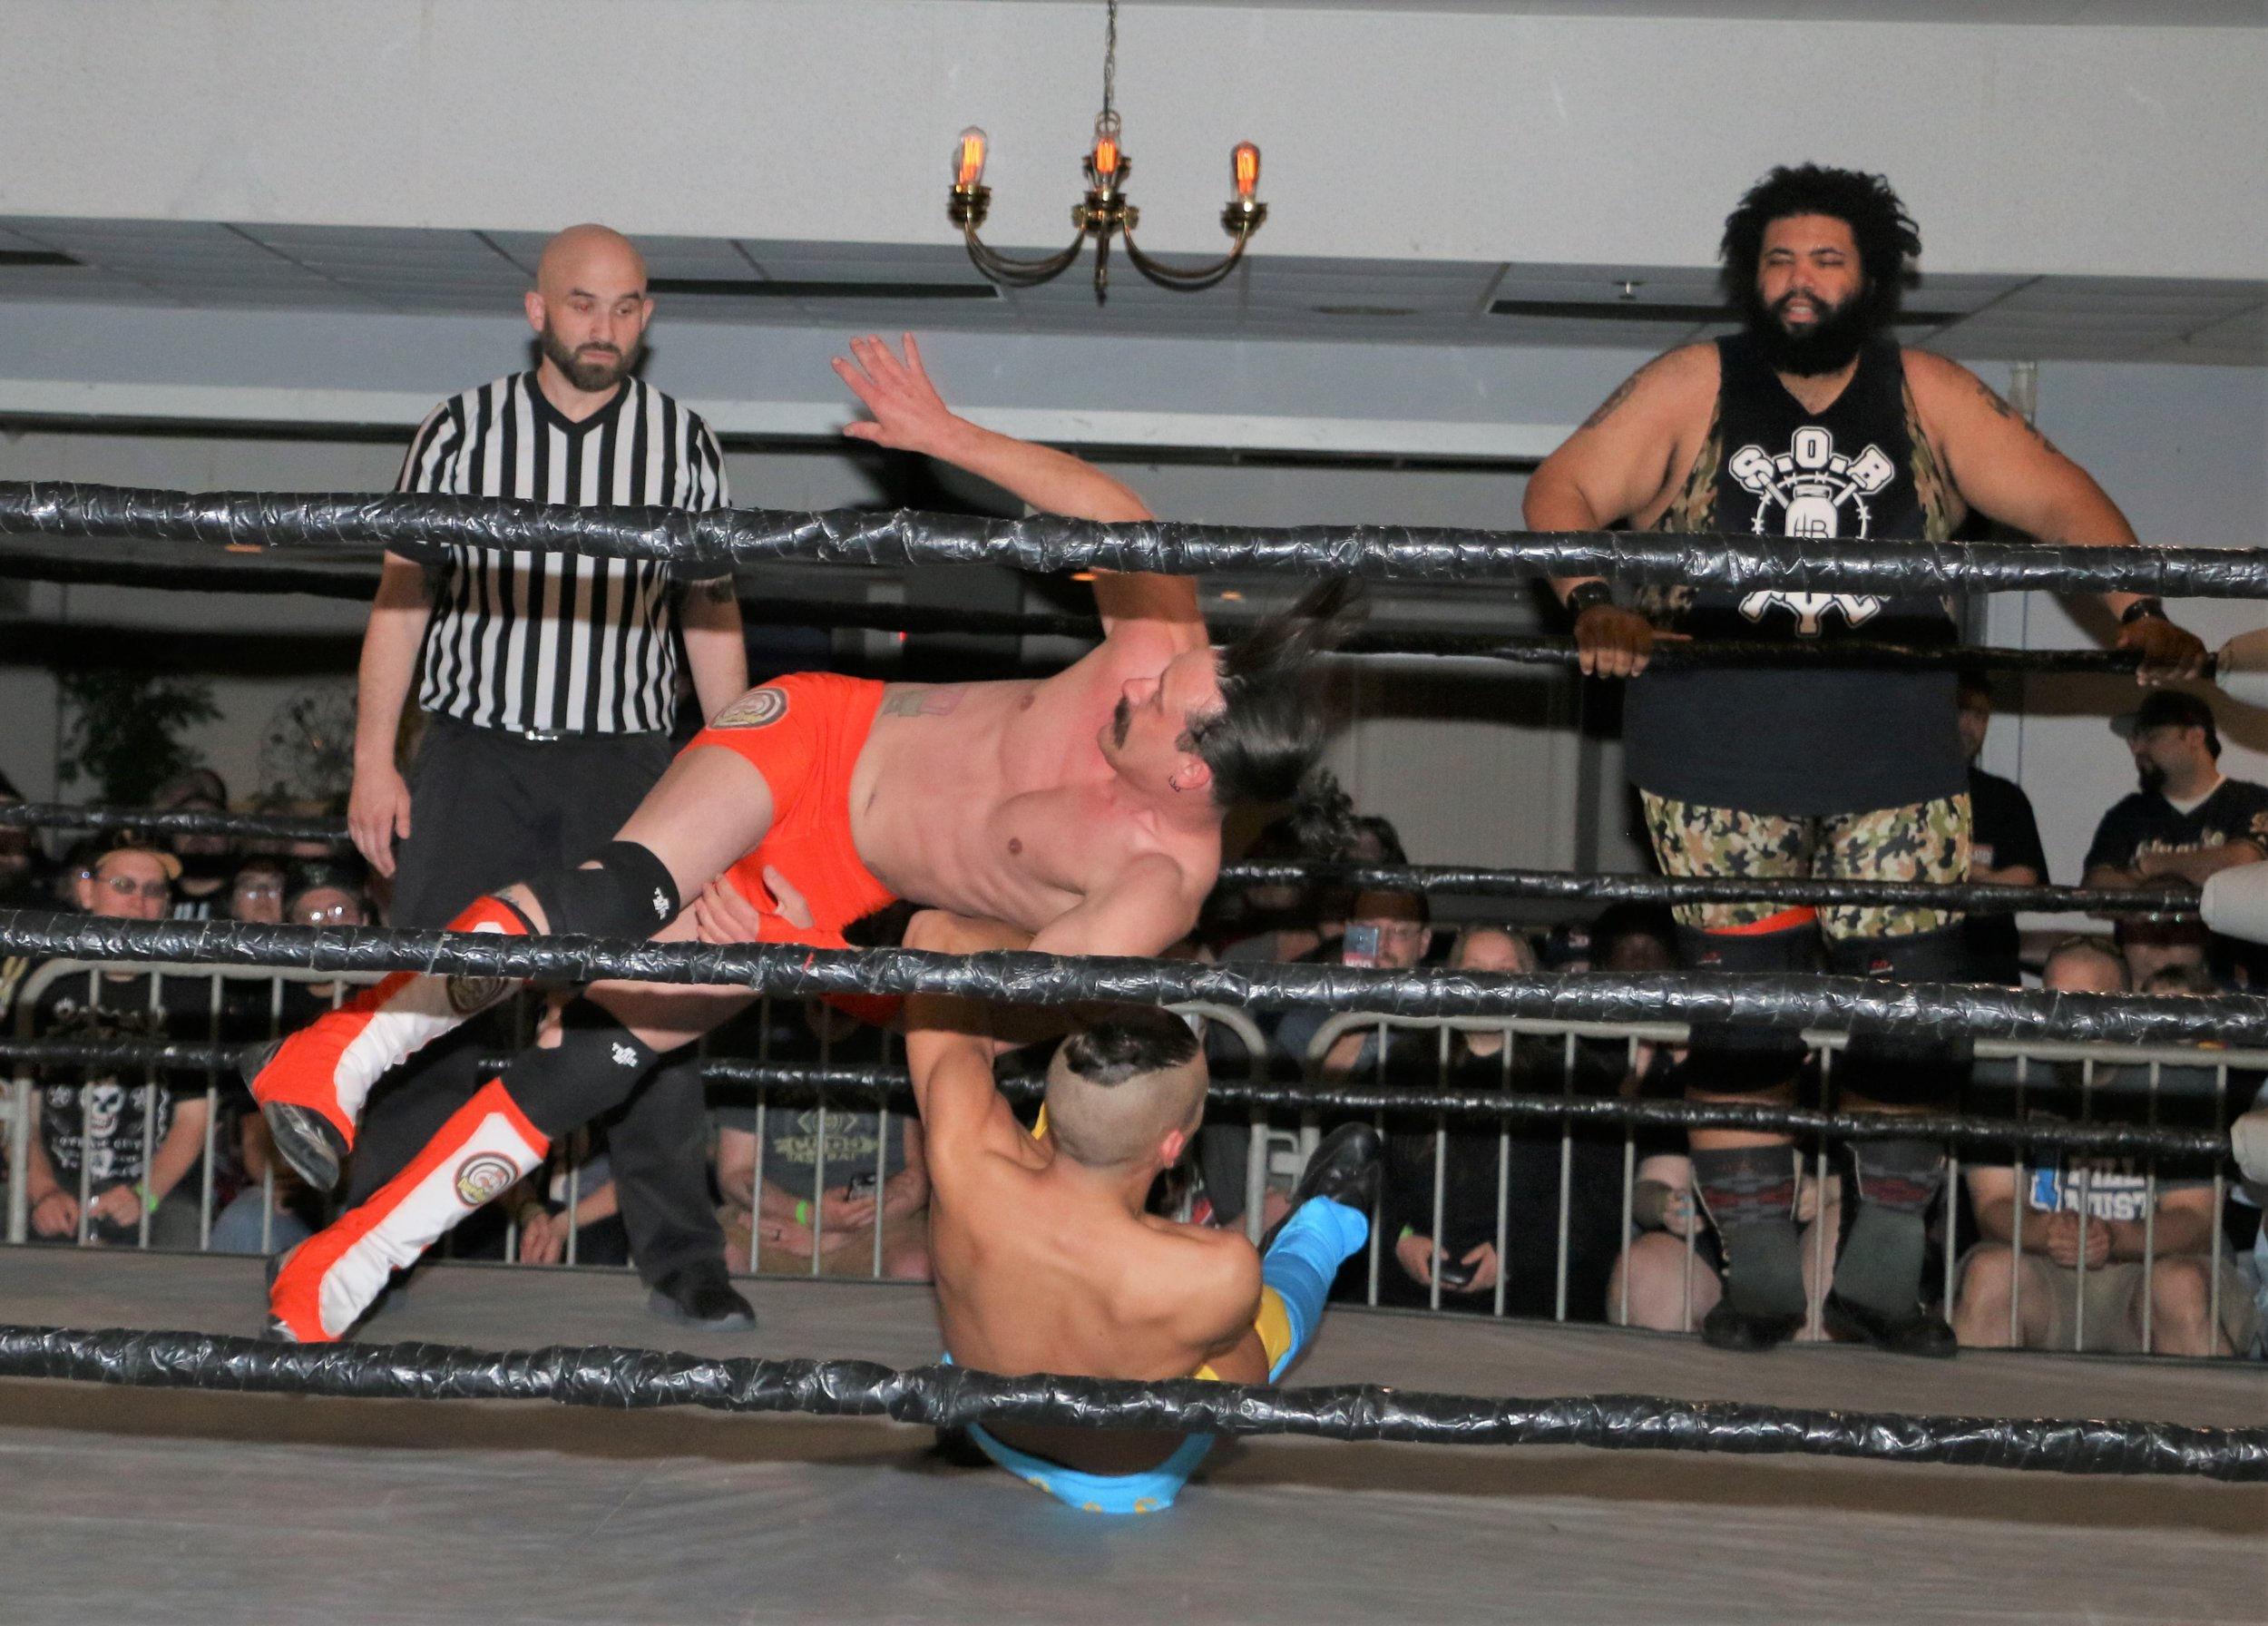 Jordan Kross arm drags Dave Rydell during the six-man tag team match.